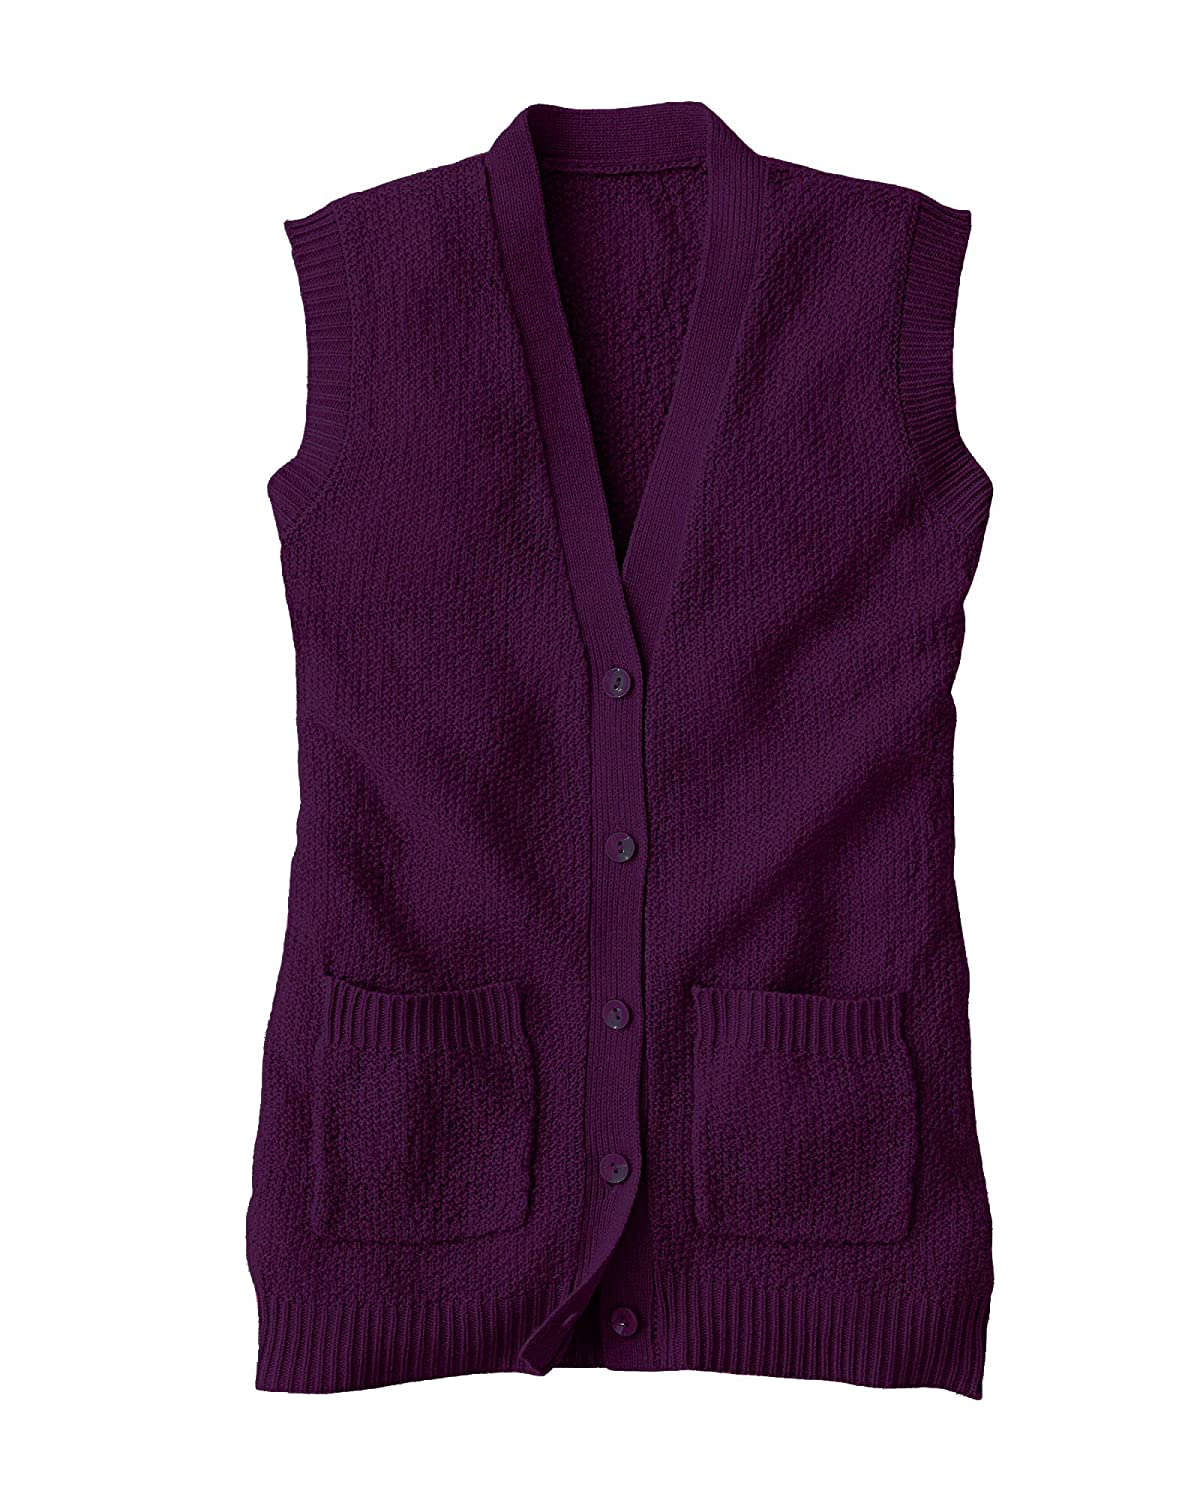 National Scramble Stitch Sweater Vest 5163